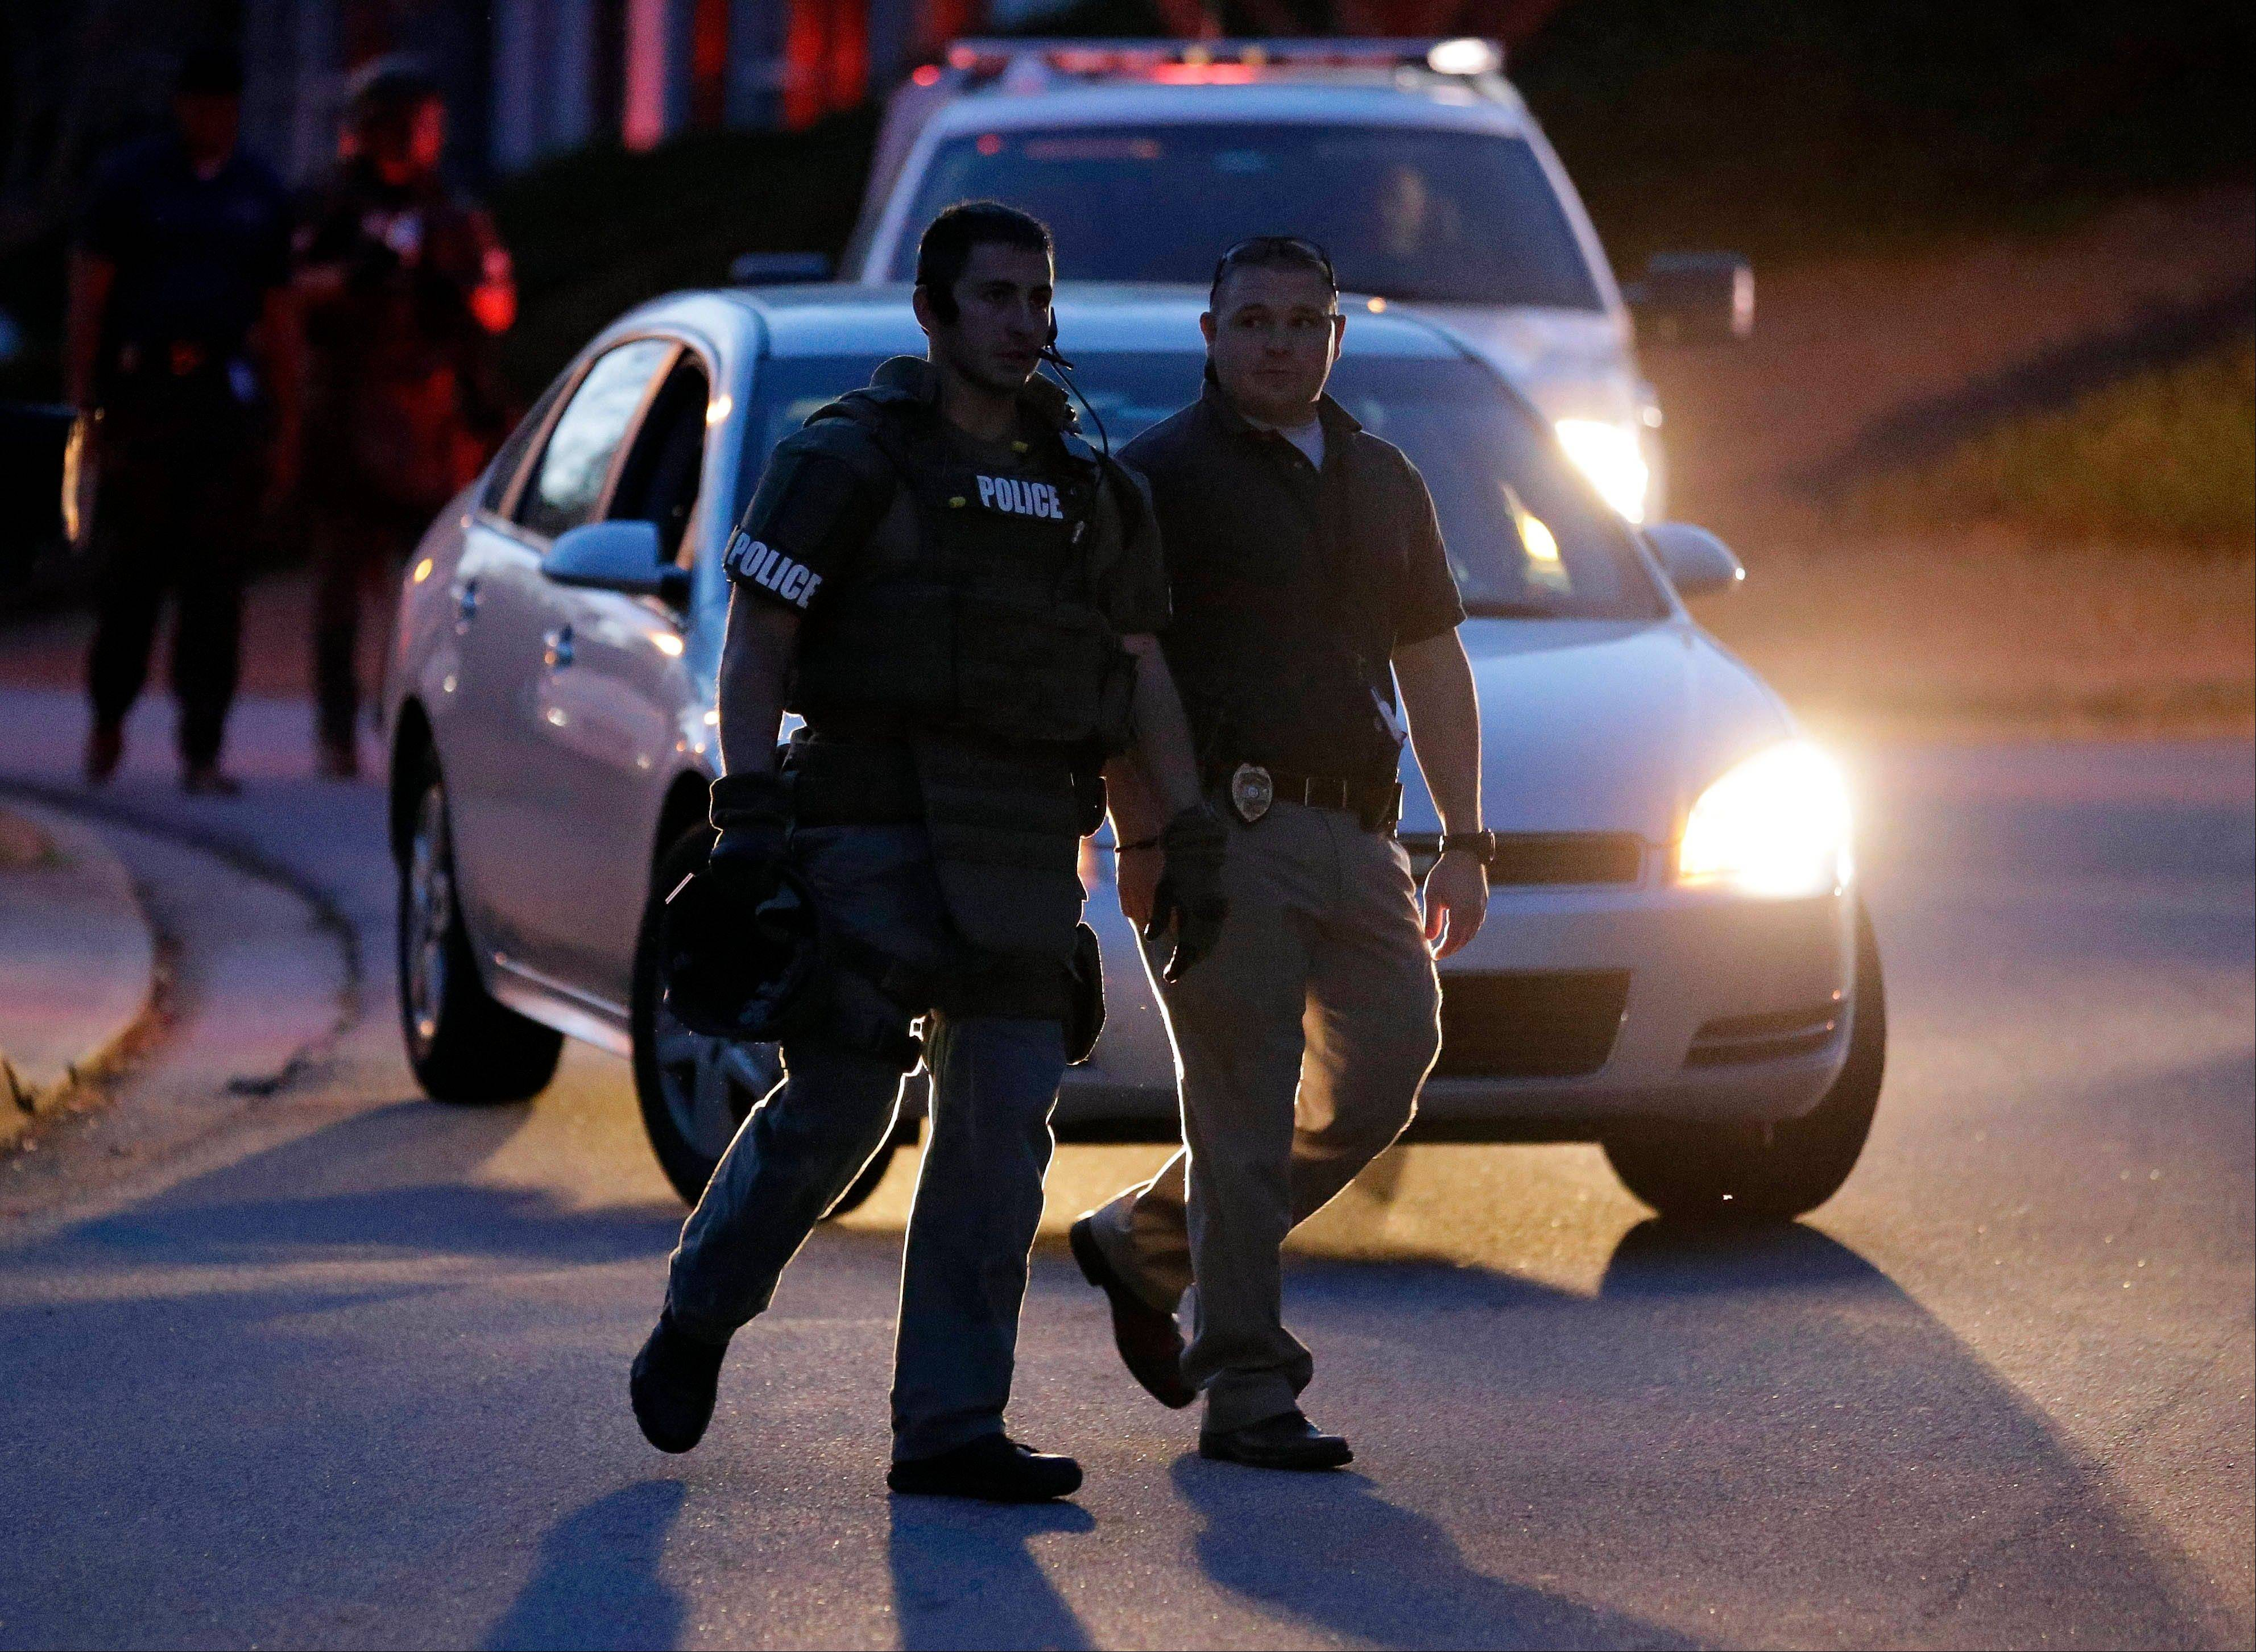 A police officer leaves the scene after an explosion and gunshots were heard near the scene where a man was holding four firefighters hostage Wednesday, April 10, 2013 in Suwanee, Ga. A police spokesman said the suspect was dead and none of the hostage suffered serious injuries.